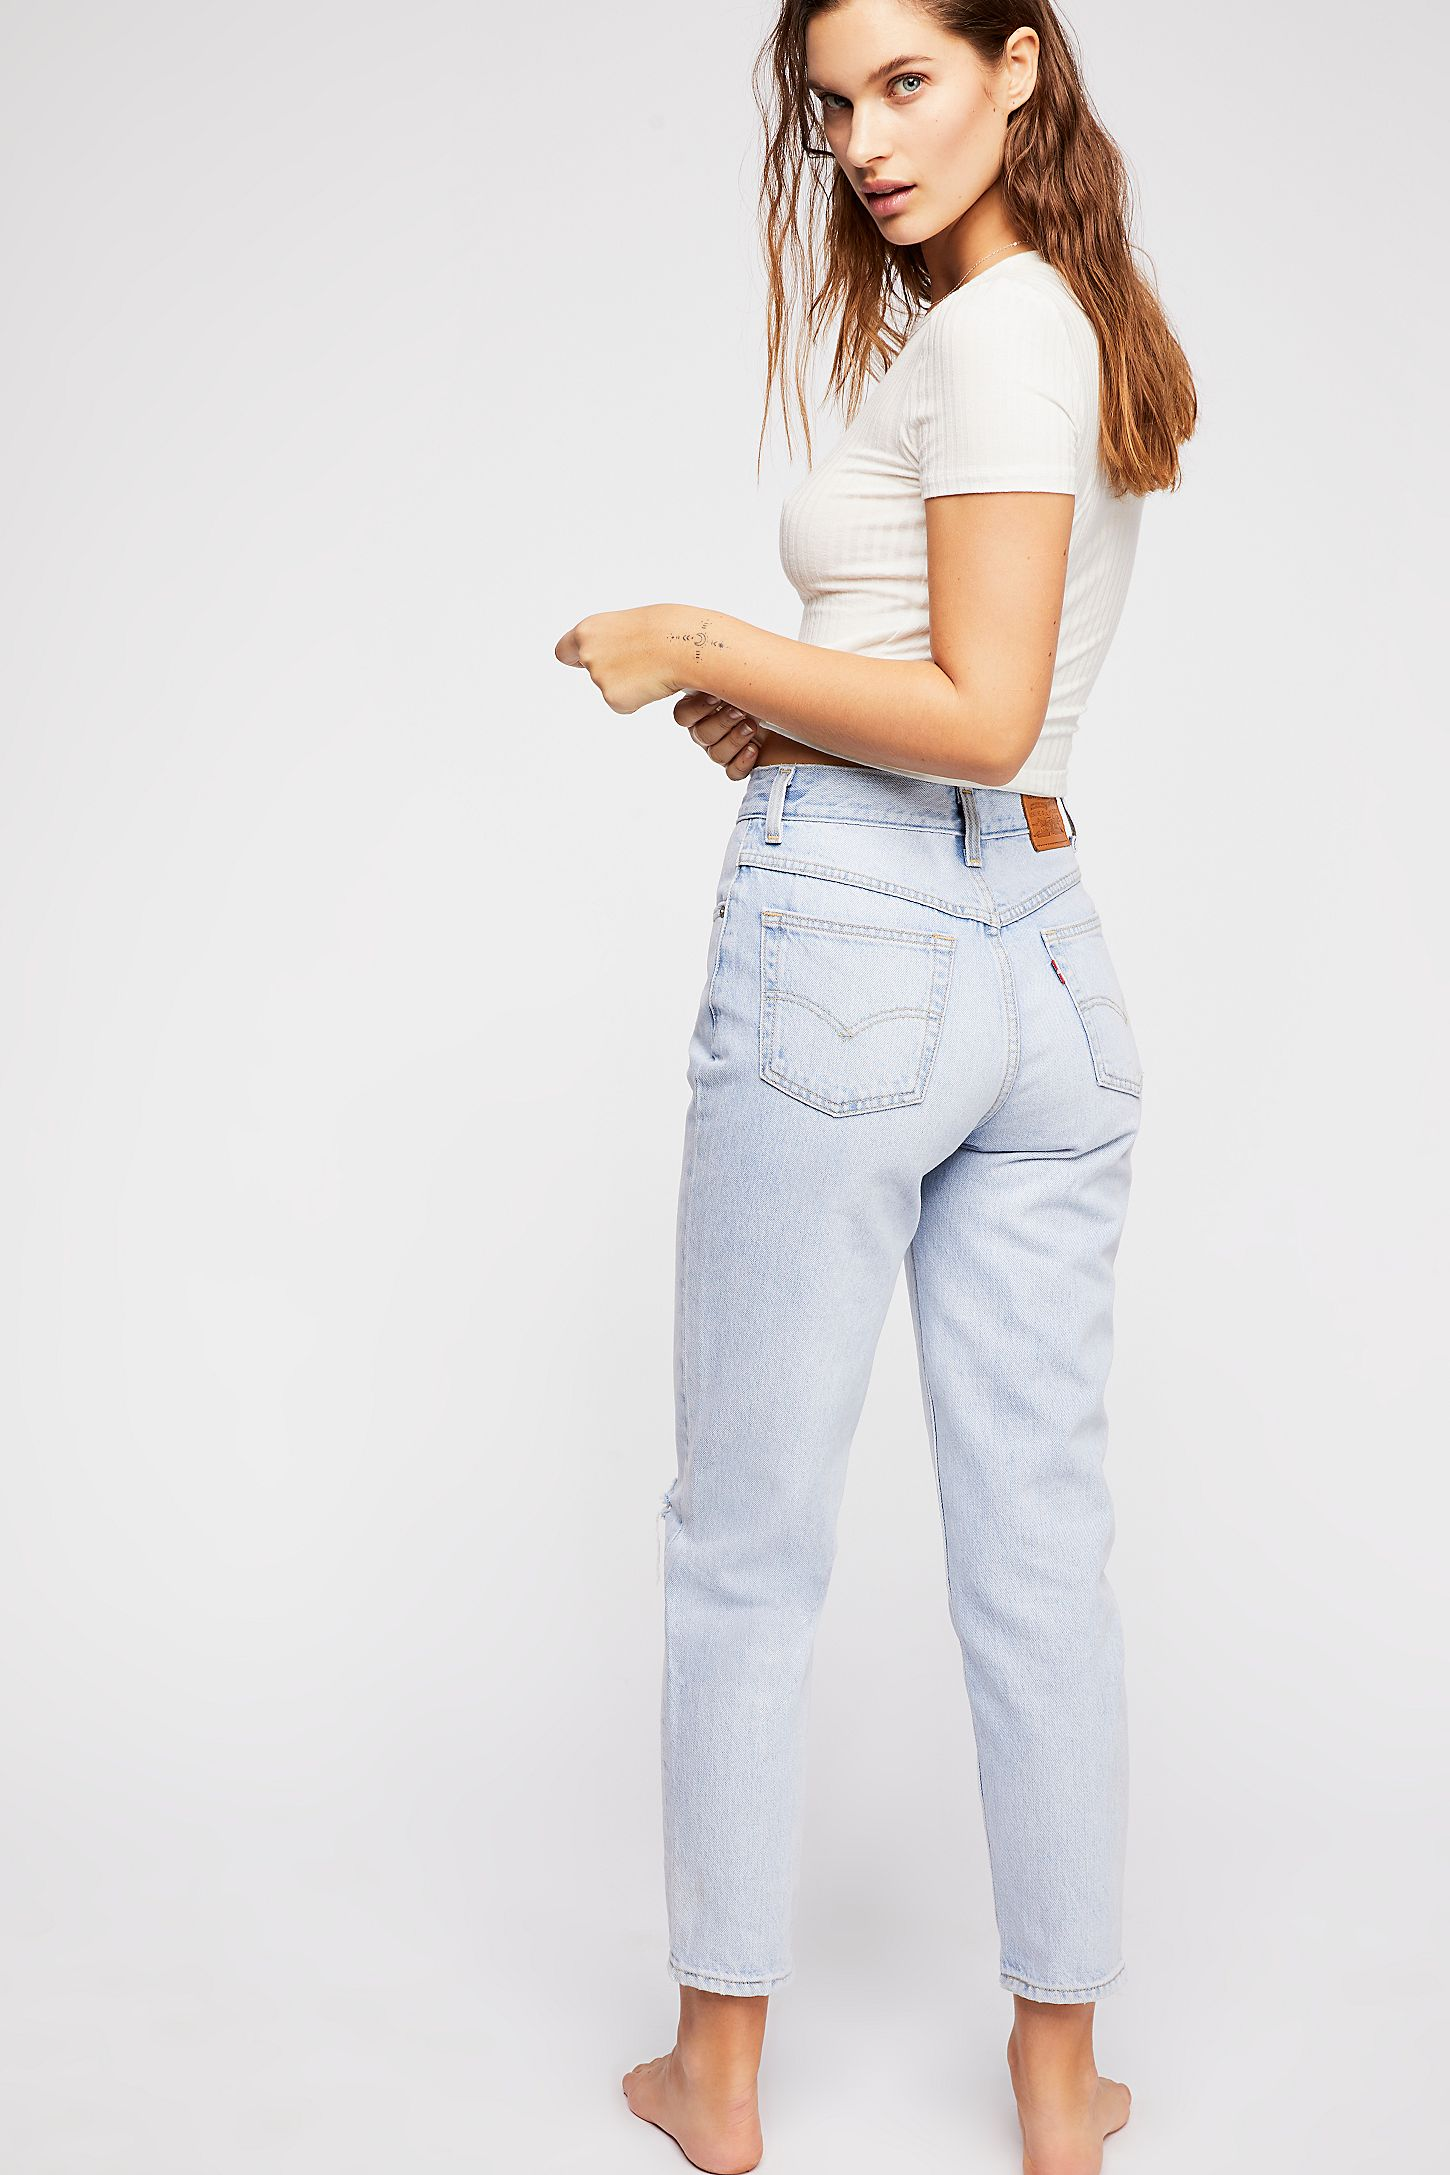 92d93a42 Levi's Mom Jeans   Free People